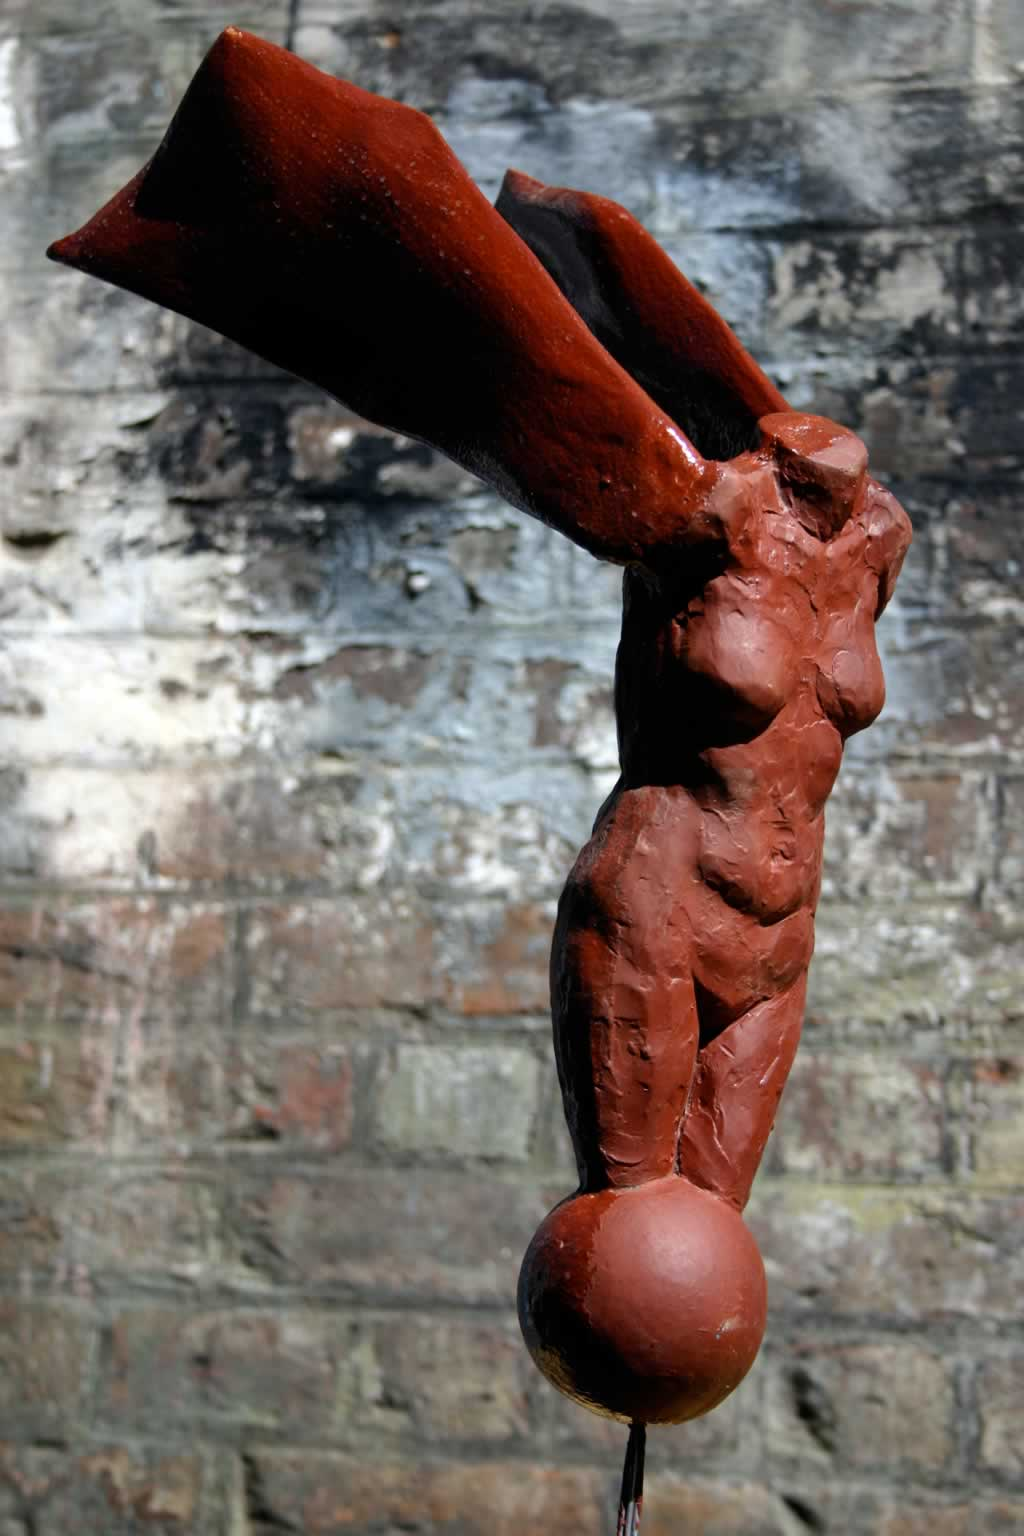 Fallen II (abstract figurative sculpture) by sculptor Ian Campbell-Briggs